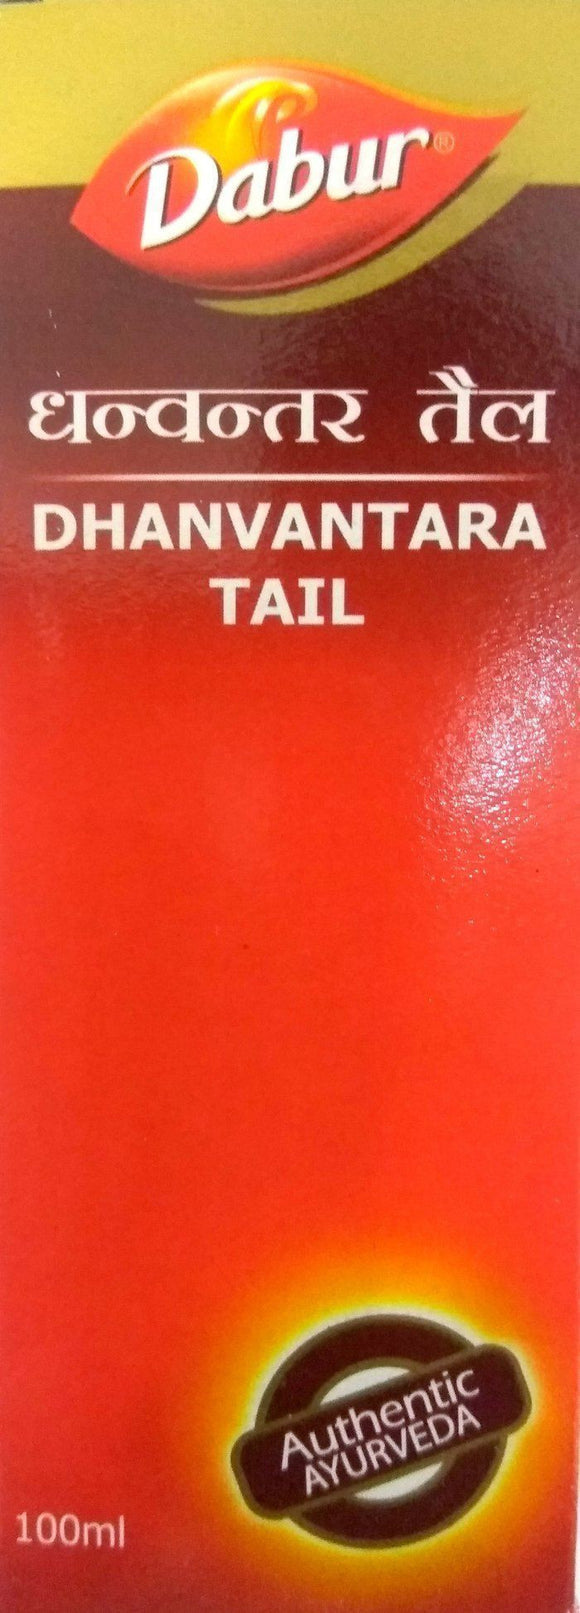 Dabur Dhanvantara Tail 100ml - Pack of 2 - Ayur Space